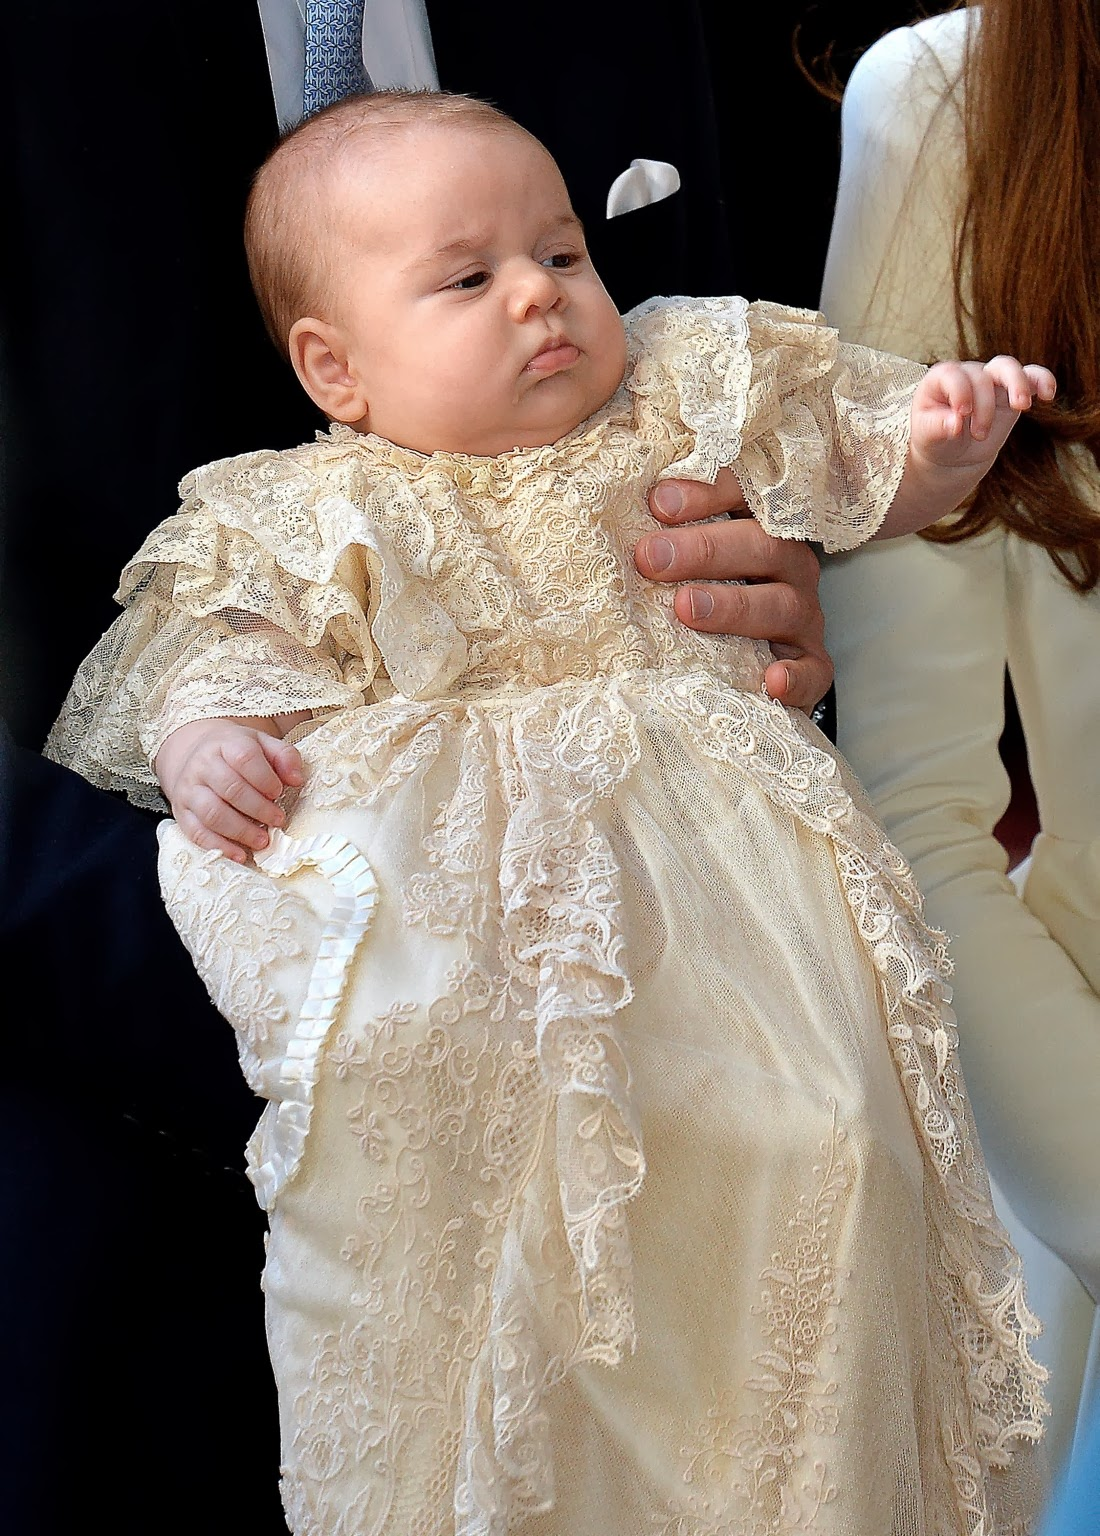 Chatter Busy: Prince George's Christening (PHOTOS)